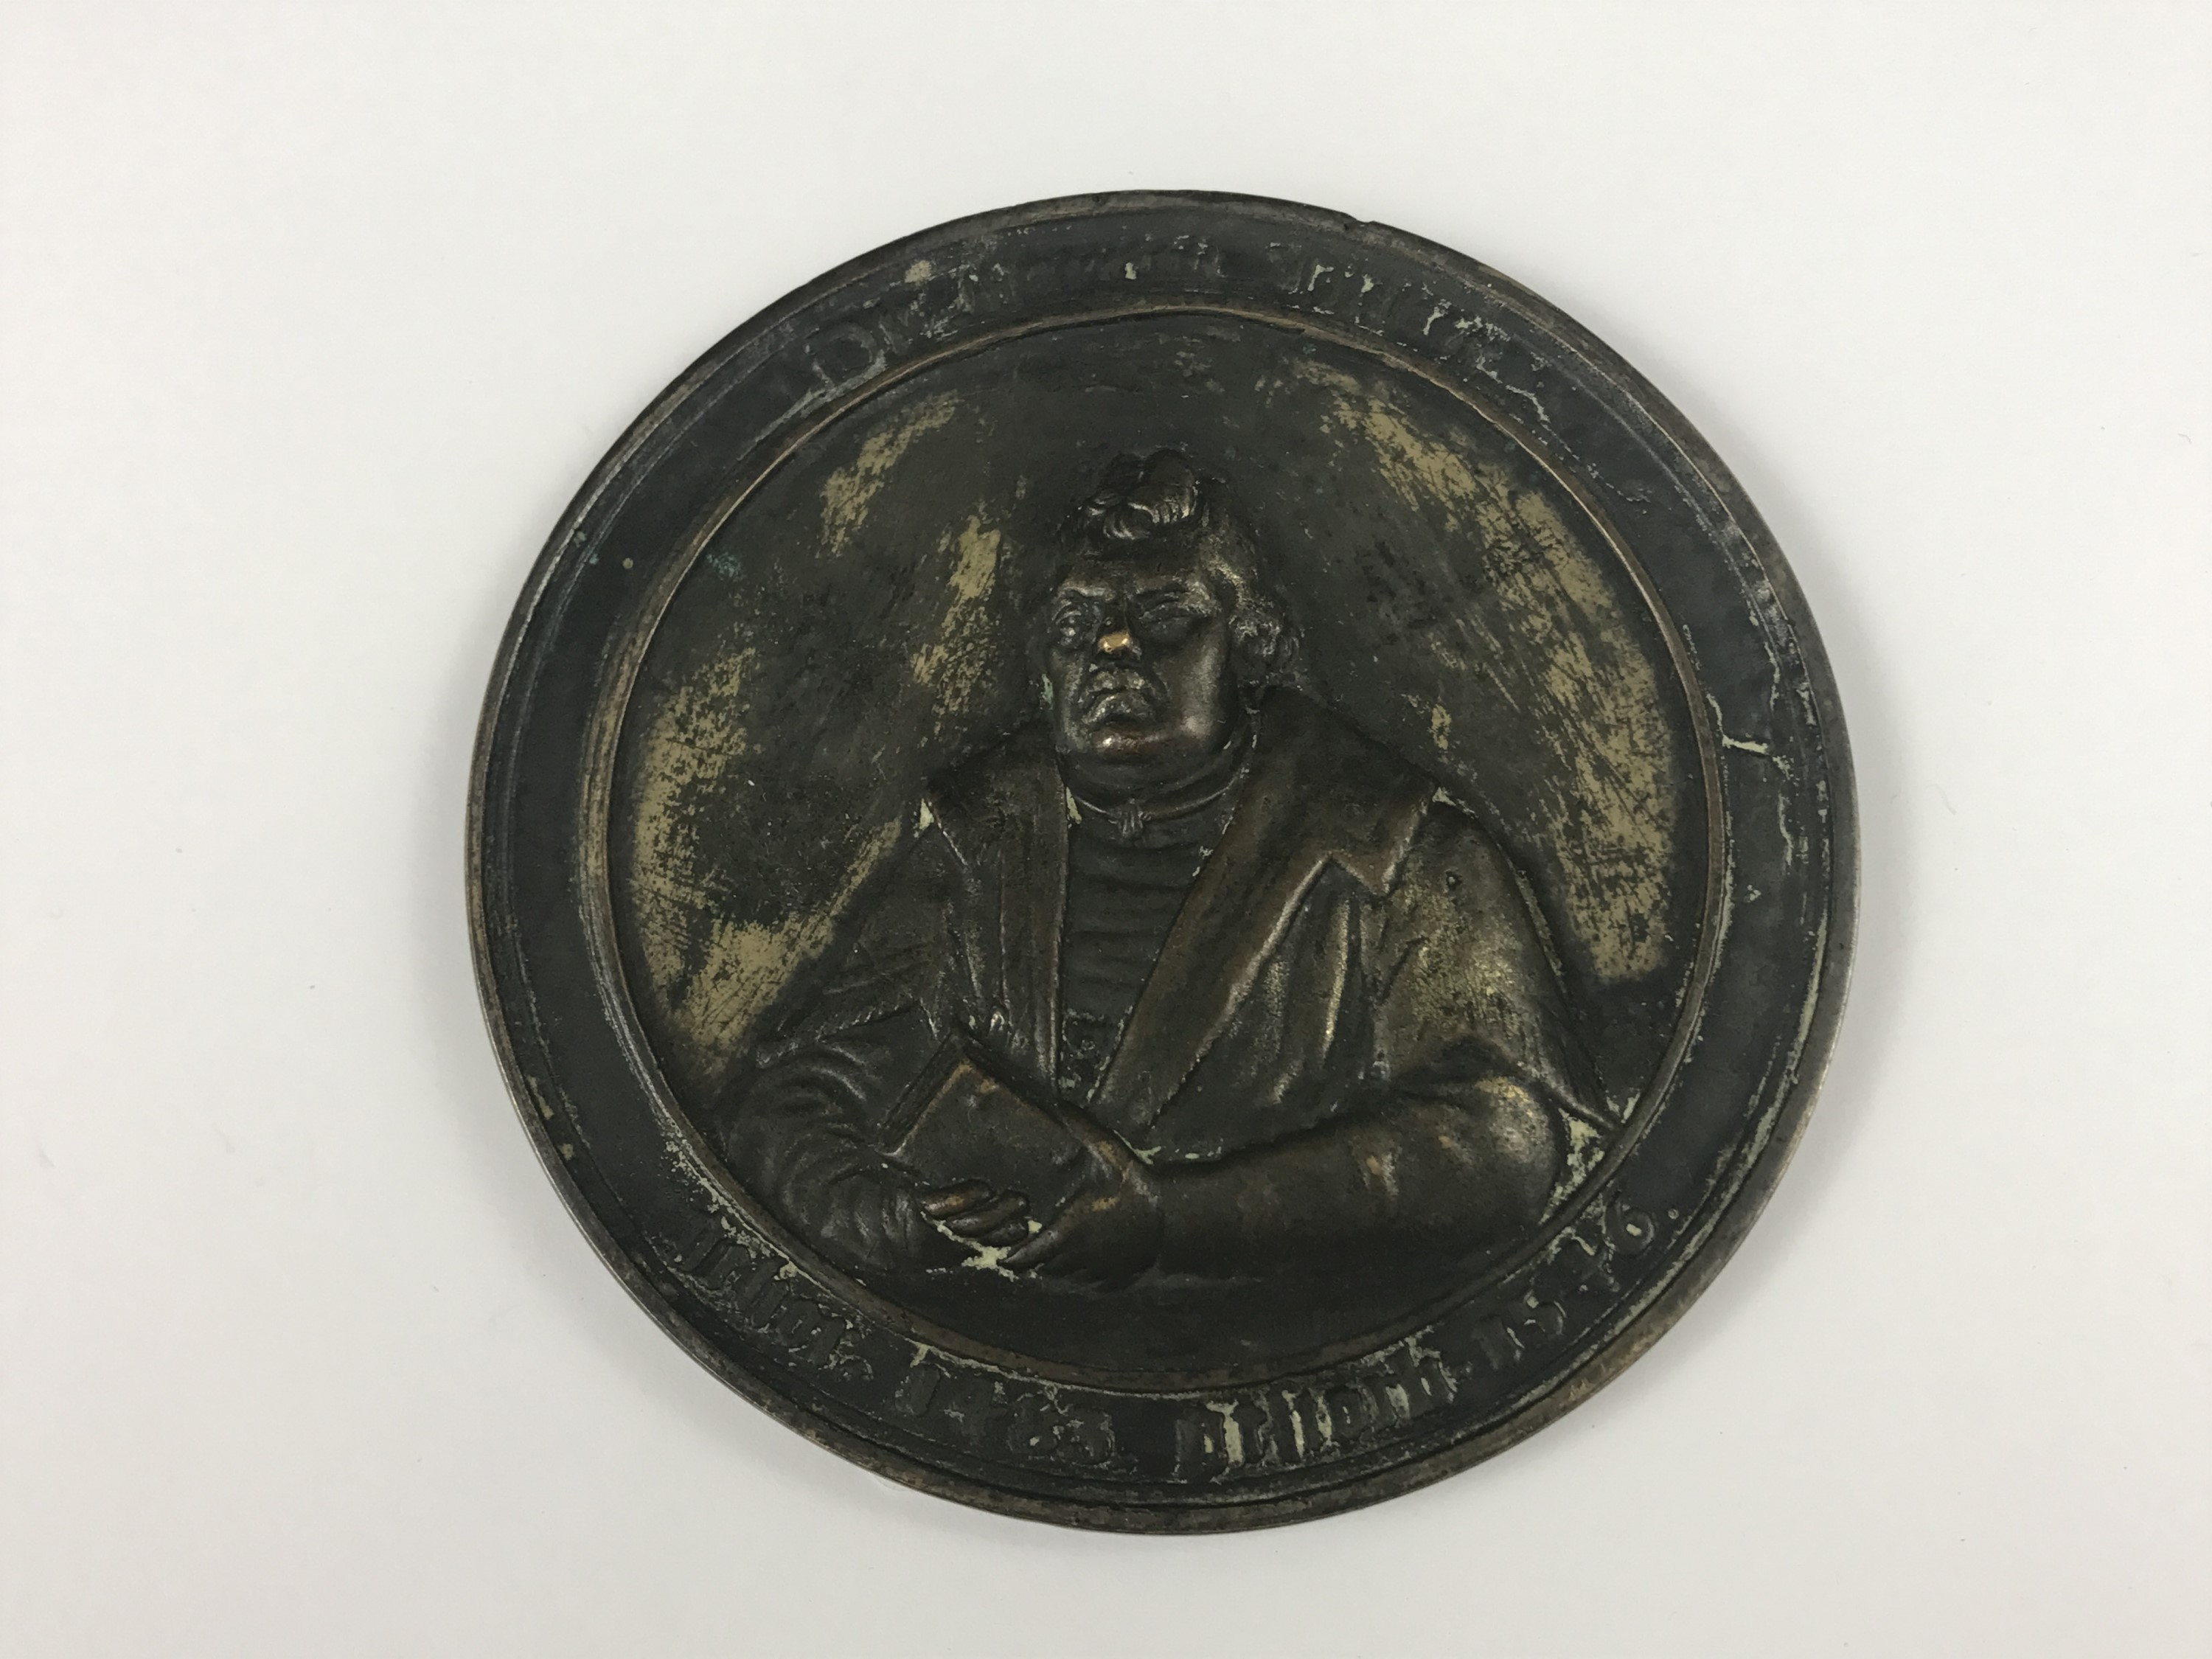 Lot 39 - A large 19th Century cast brass medallion commemorating Martin Luther, 10.5 cm